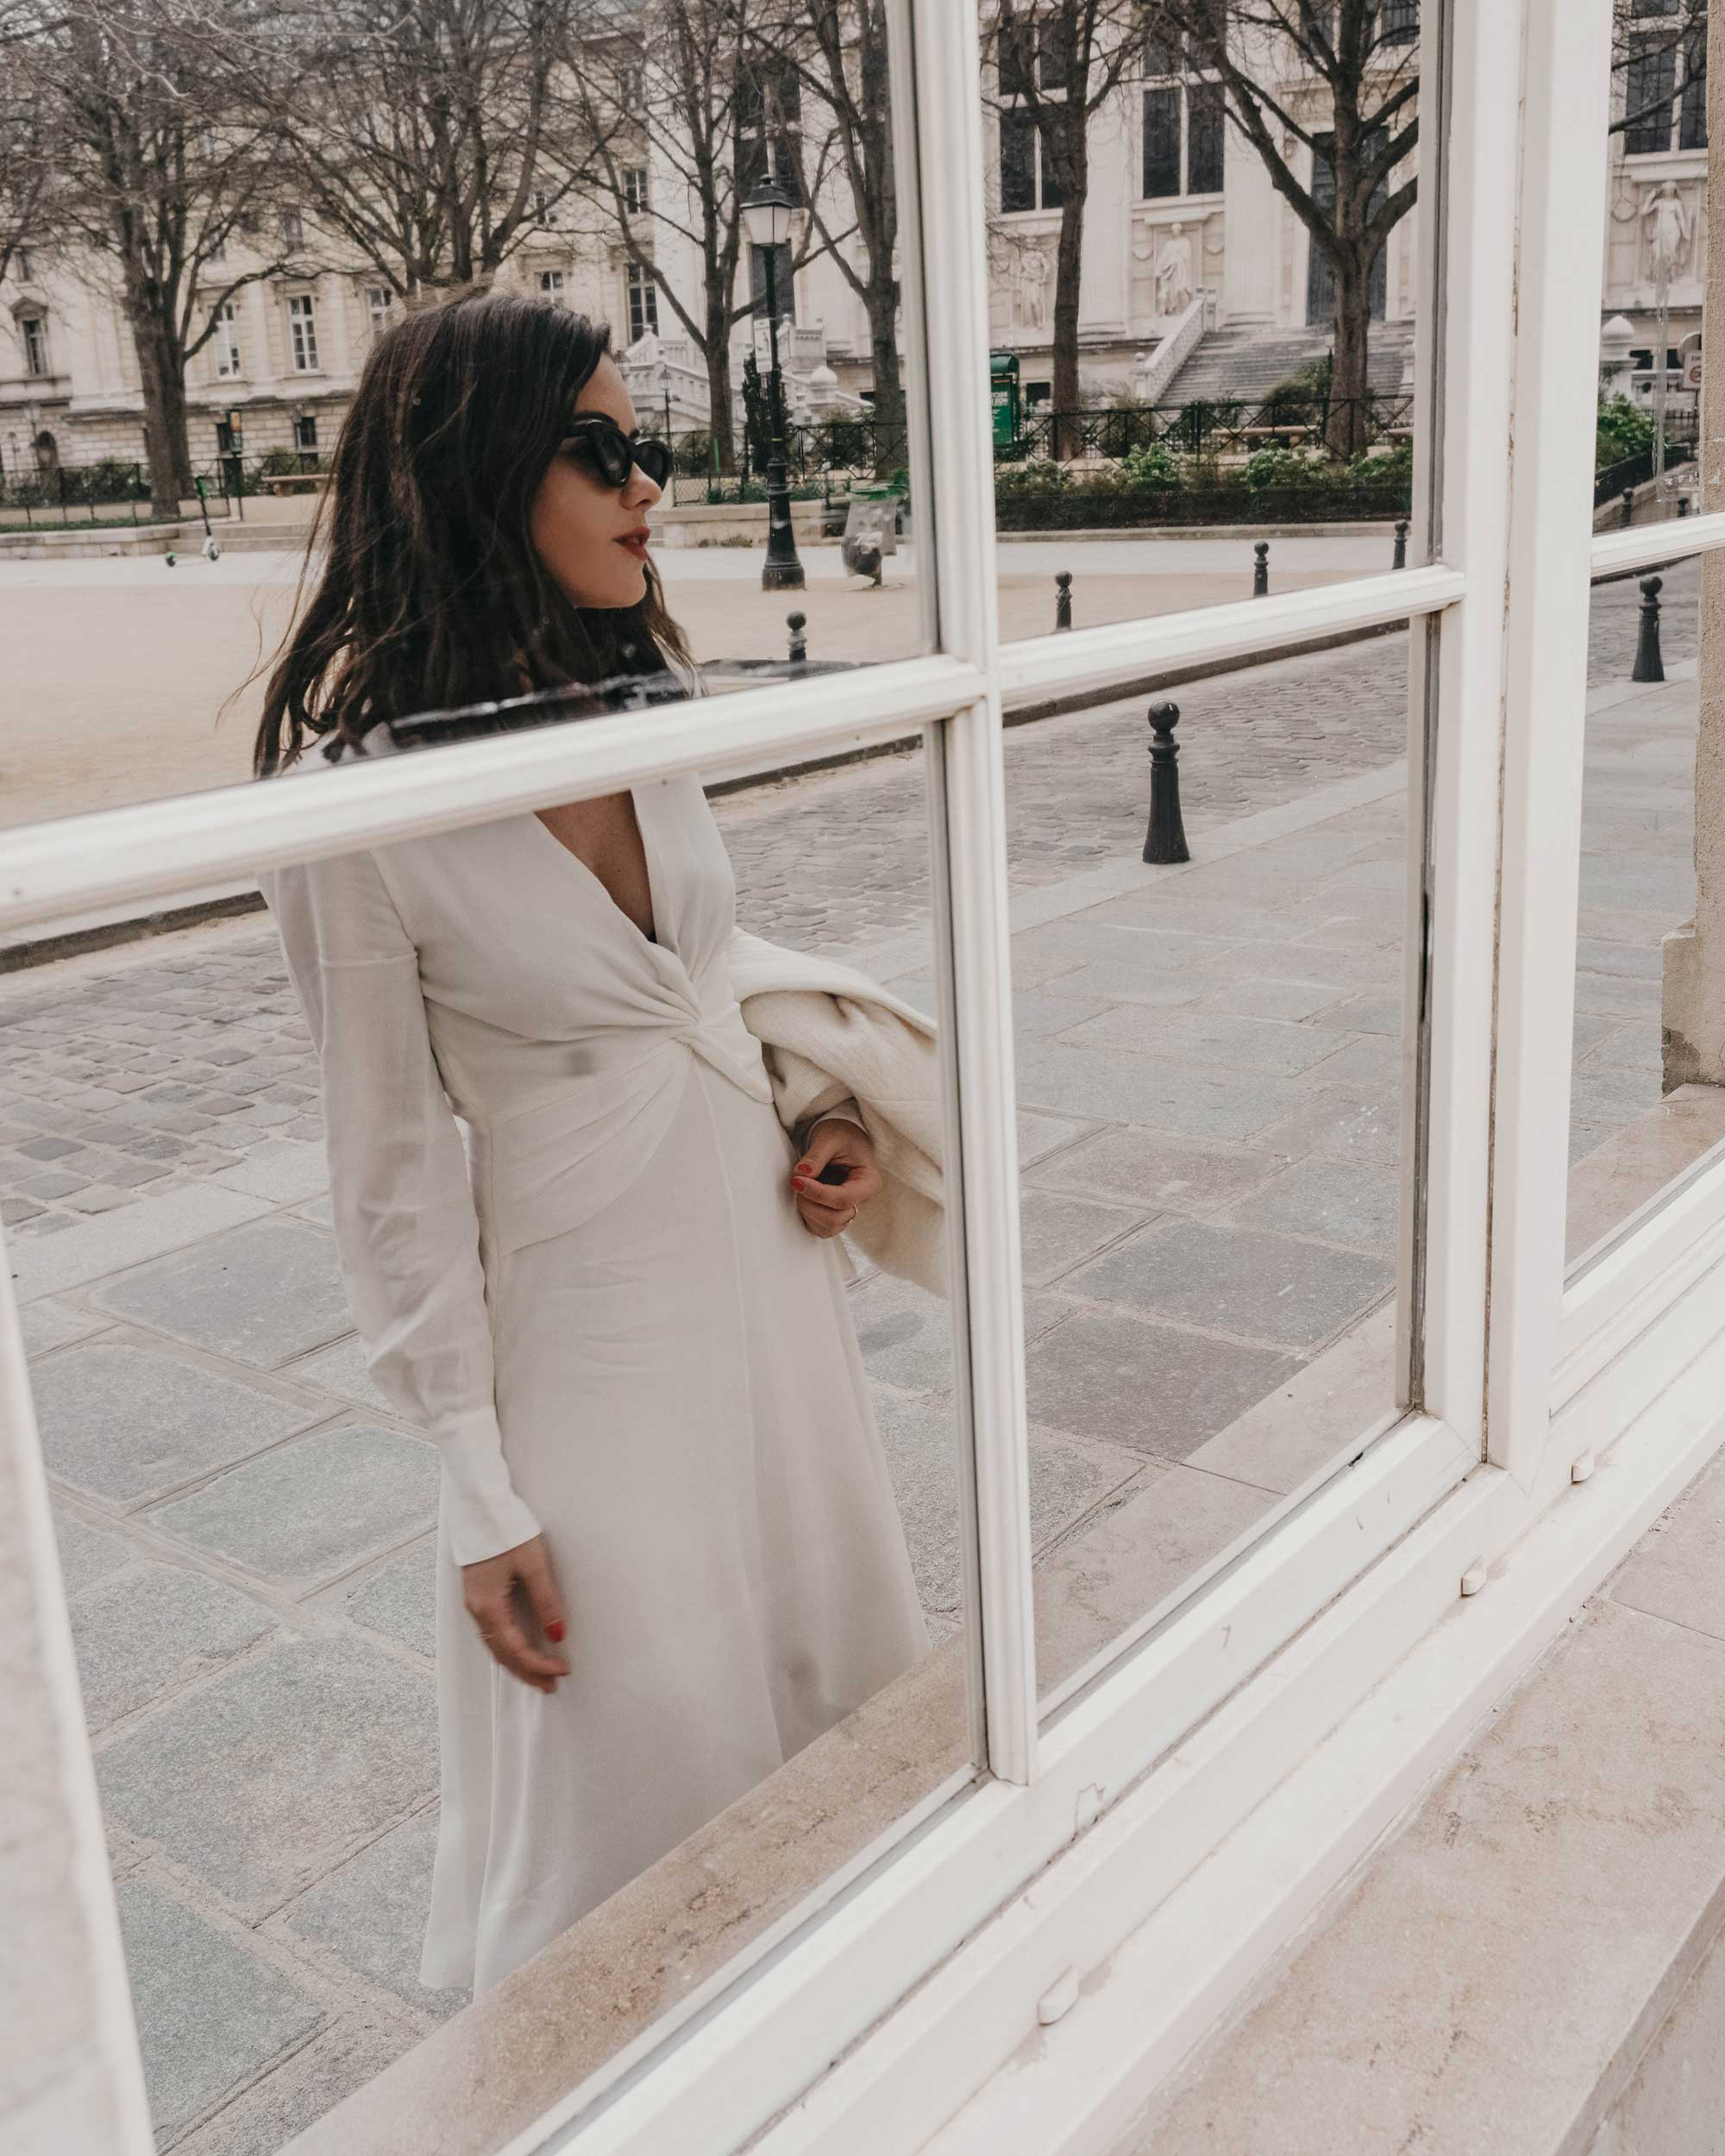 Sarah Butler of Sarah Styles Seattle wears Equipment Faun crepe midi dress with a flatteringly knotted front and plunging neckline in Paris, France | @sarahchristine, Seattle Blogger - 3.jpg